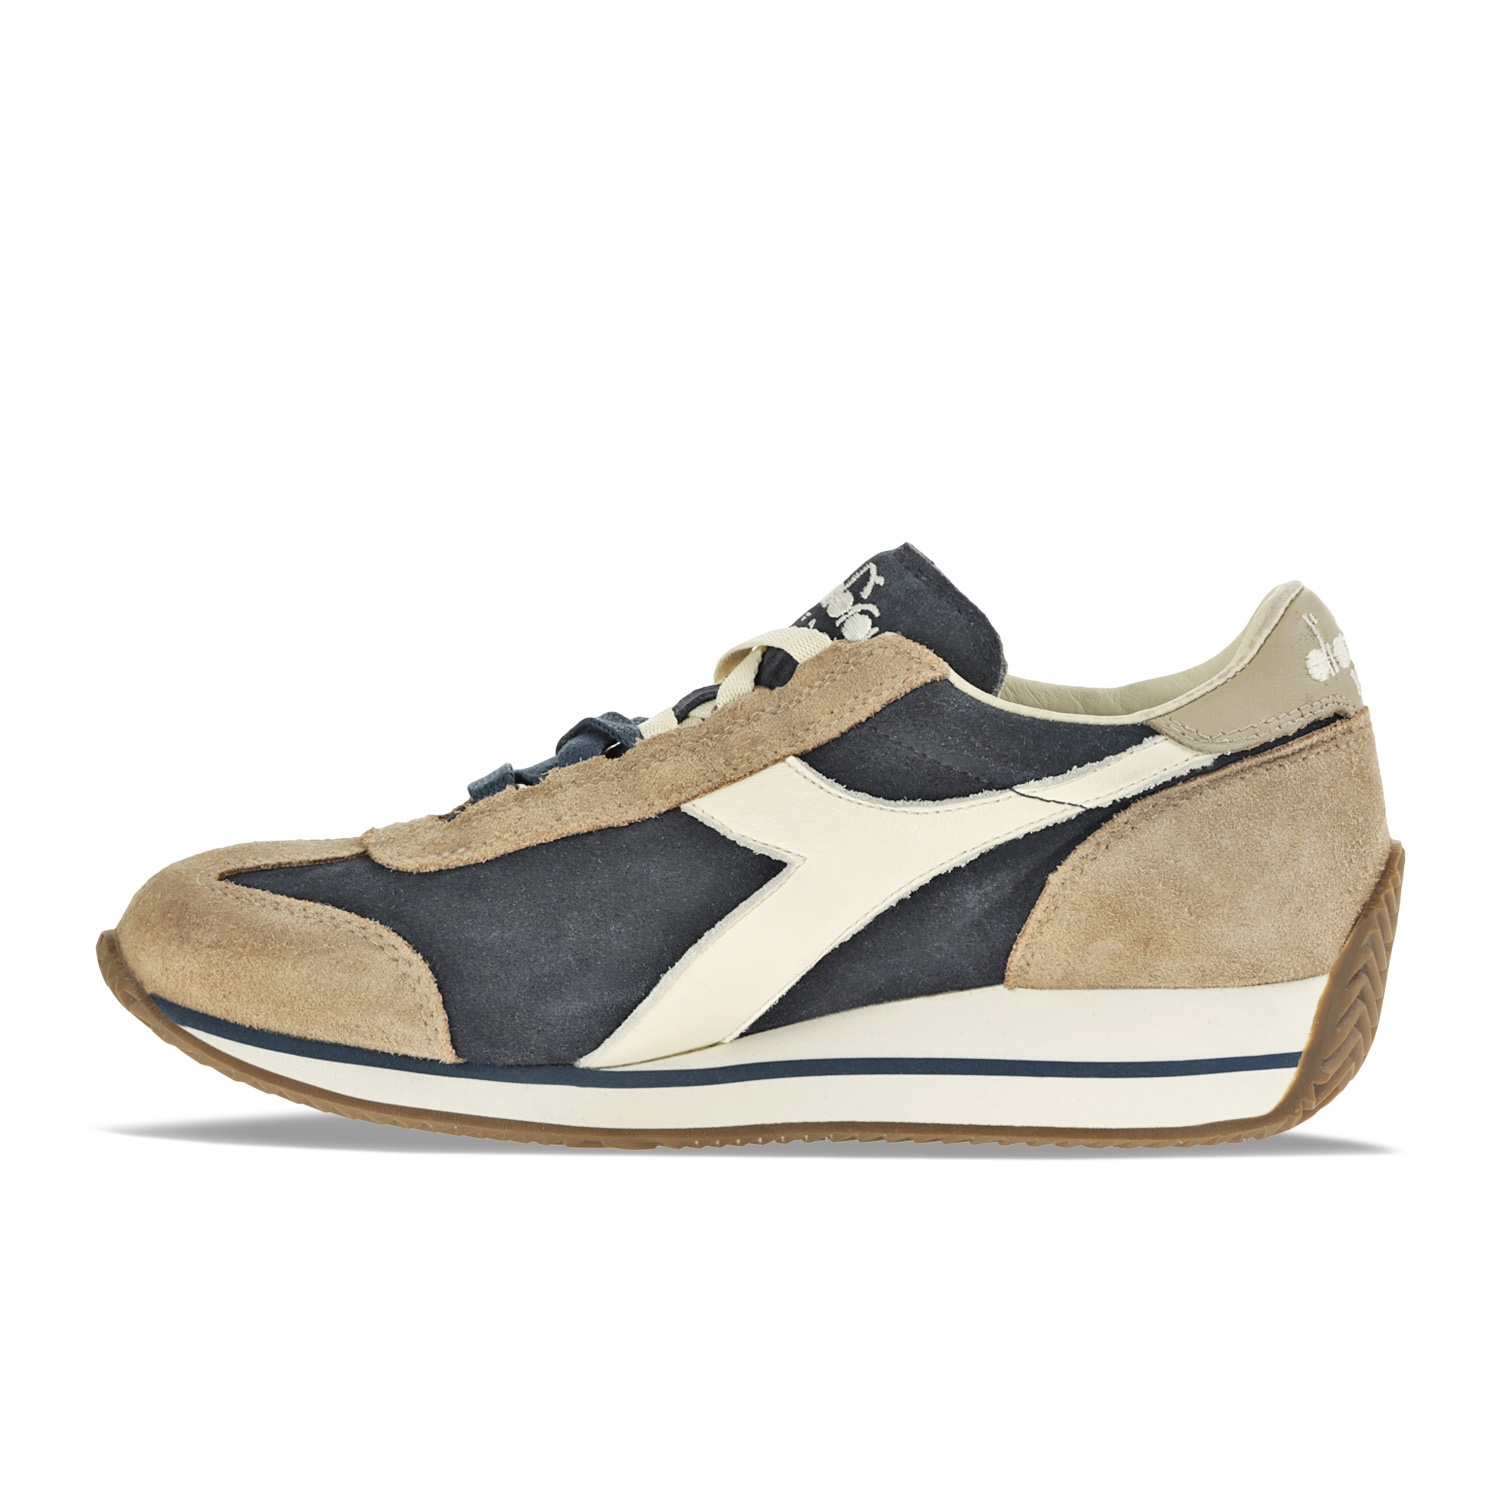 Diadora heritage equipe s. sw hh c5942 sneakers donna blu, eur 38 amazon shoes marroni